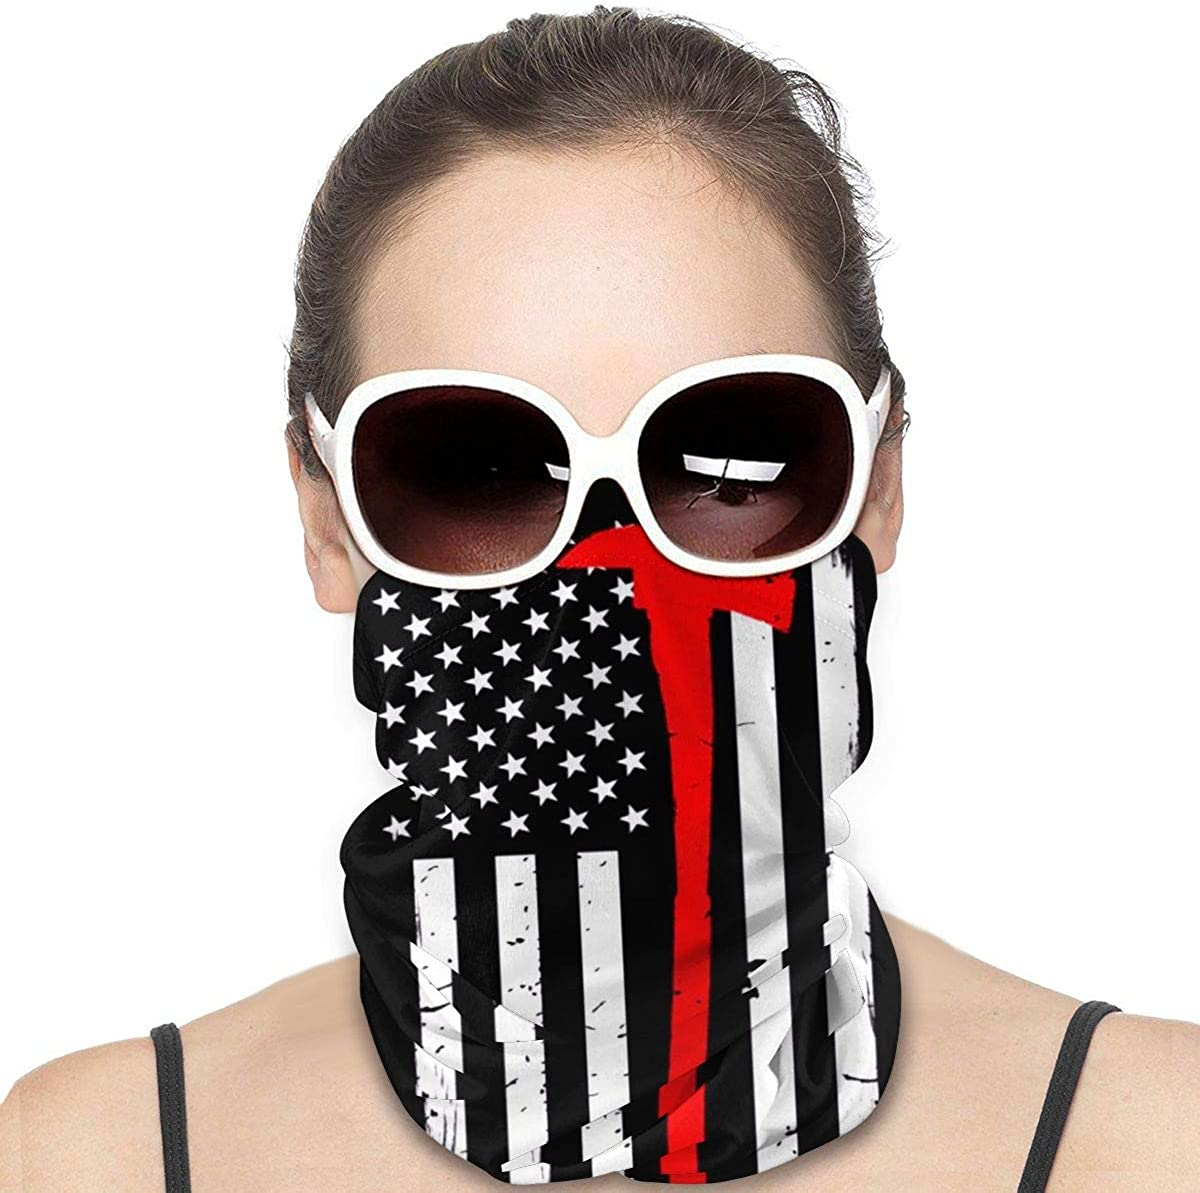 Bandana Face Mask - Firefighter Flag Thin Red Line Axe Motorcycle Mask Ski Mask Face Scarf Head Bands Neck Gaiters for Men Headband Sun Mask